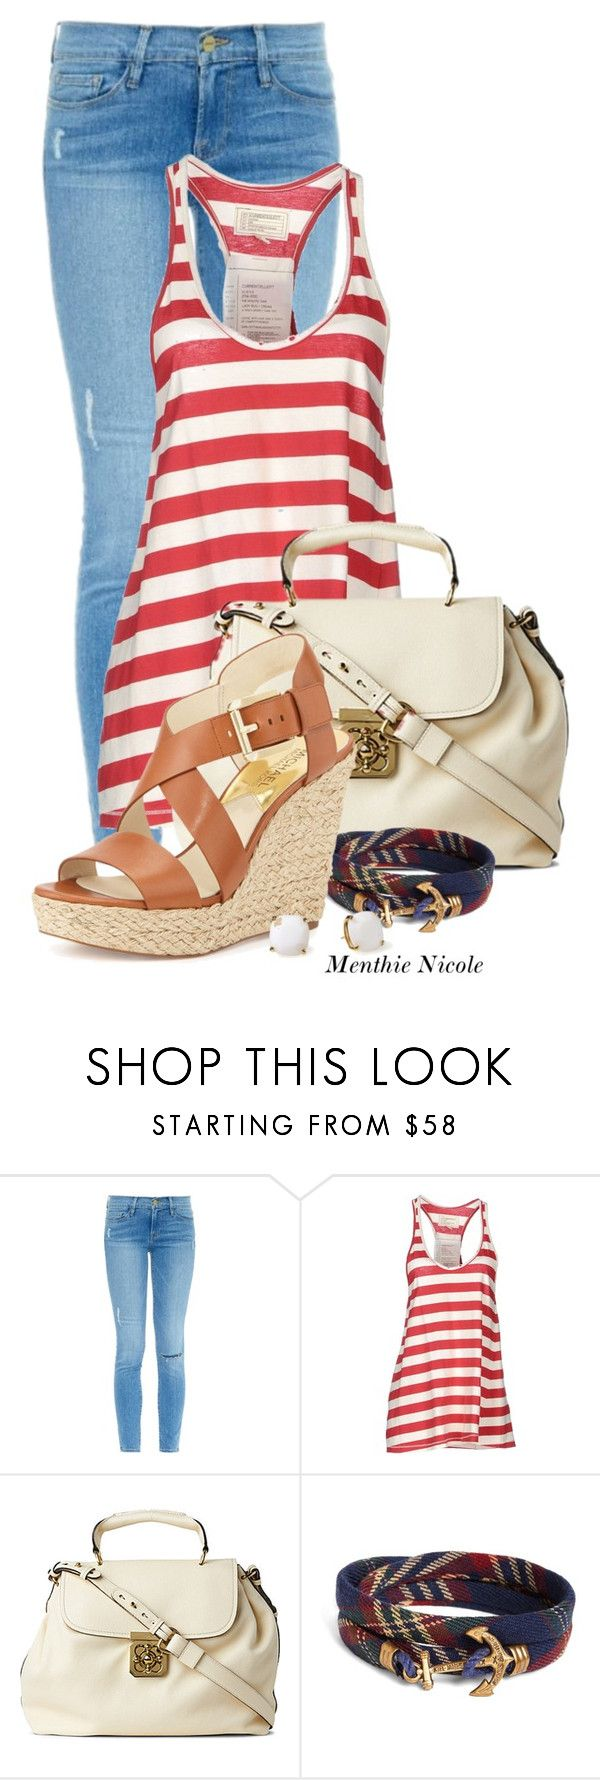 """""""Wedge Me Patriot"""" by menthienicole ❤ liked on Polyvore featuring Frame, Current/Elliott, Chloé, Brooks Brothers, MICHAEL Michael Kors and Kate Spade"""